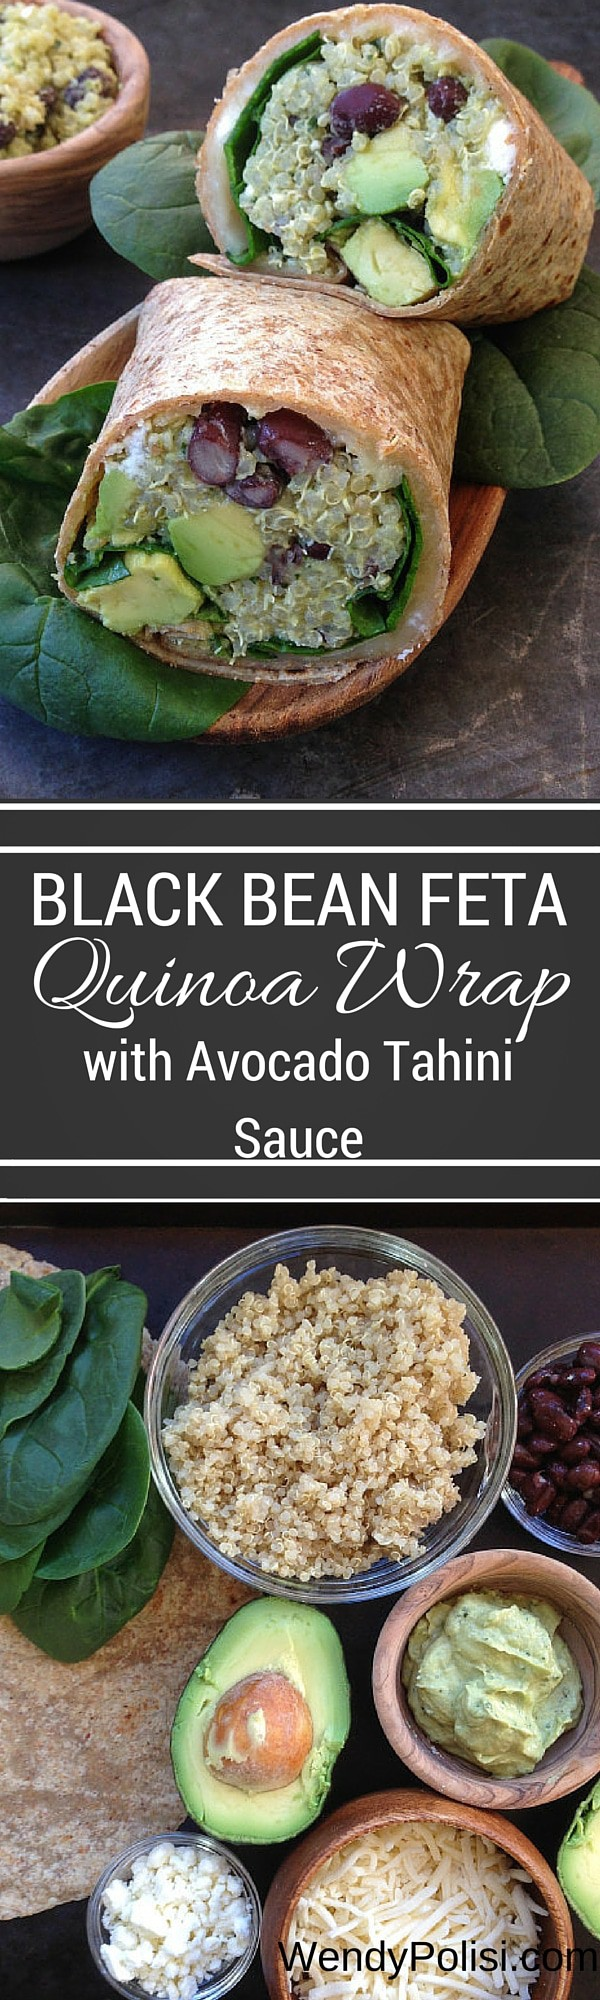 This healthy Veggie Quinoa Wrap with Black Beans and Avocado makes a great gluten free lunch and is also great for dinner! #quinoa #quinoarecipes #healthyrecipes #healthyfood #glutenfree #glutenfreerecipes #healthyglutenfreerecipes #quinoawrap